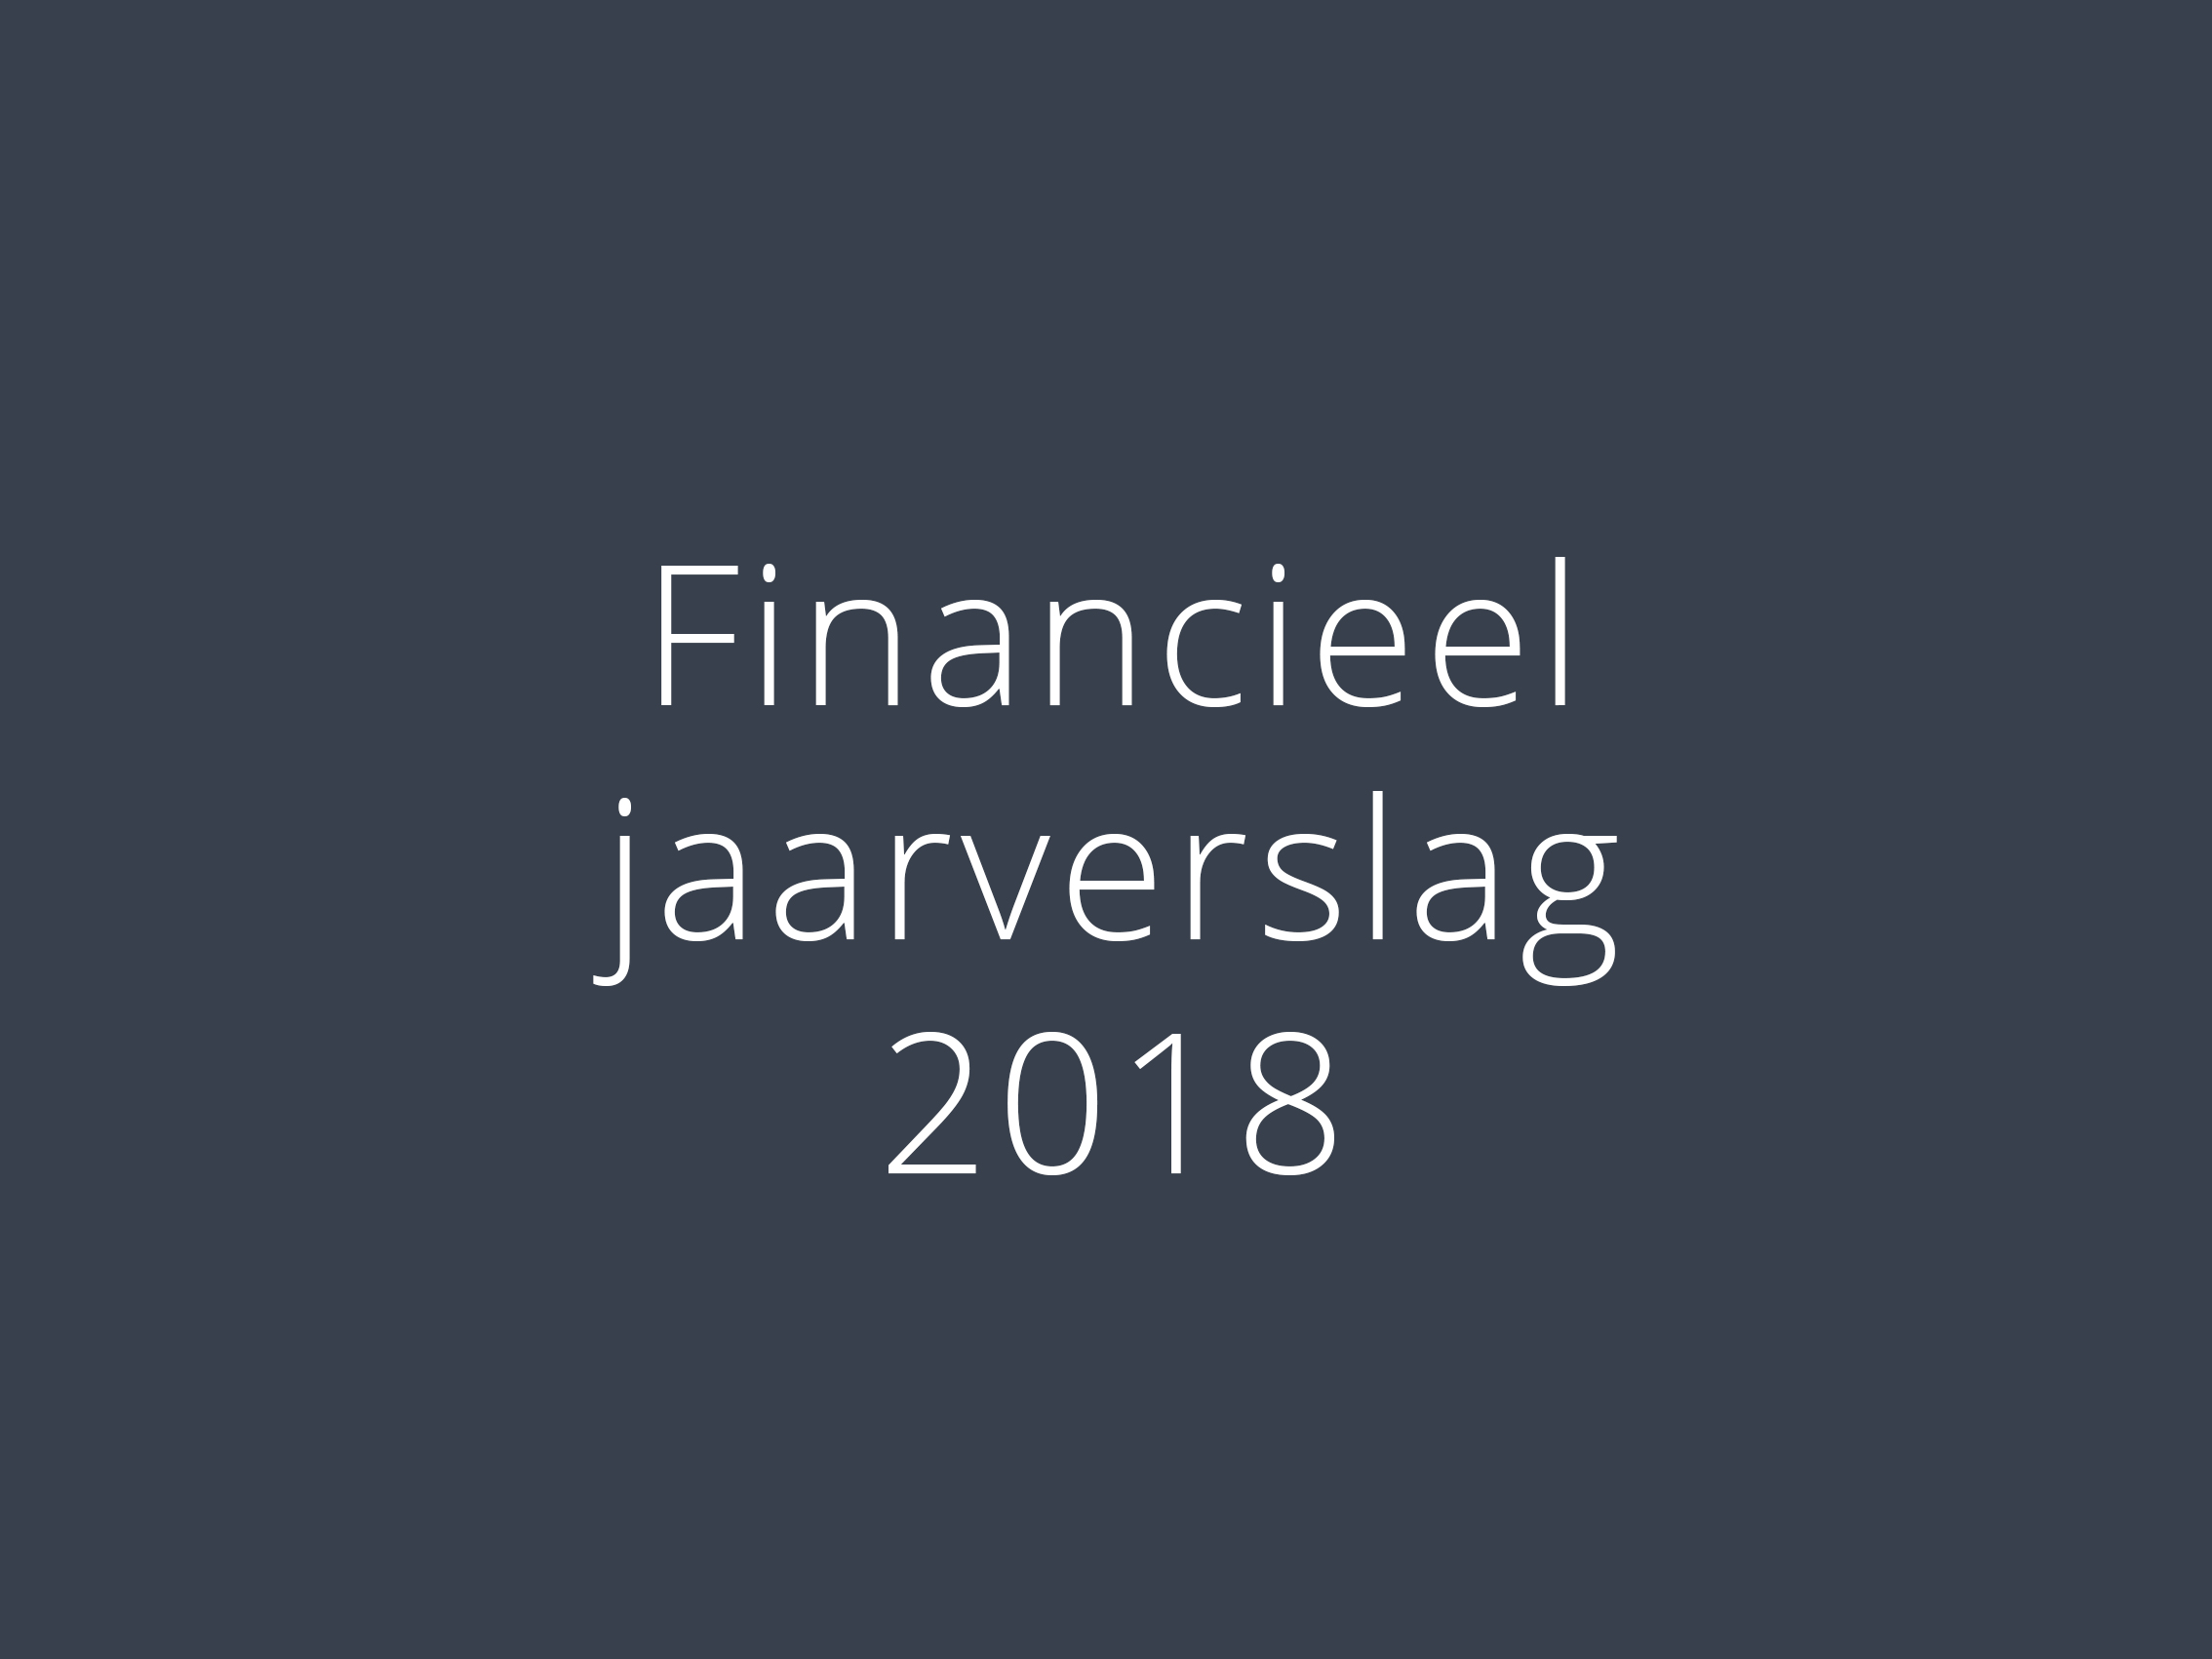 financieel jaarverslag 2018